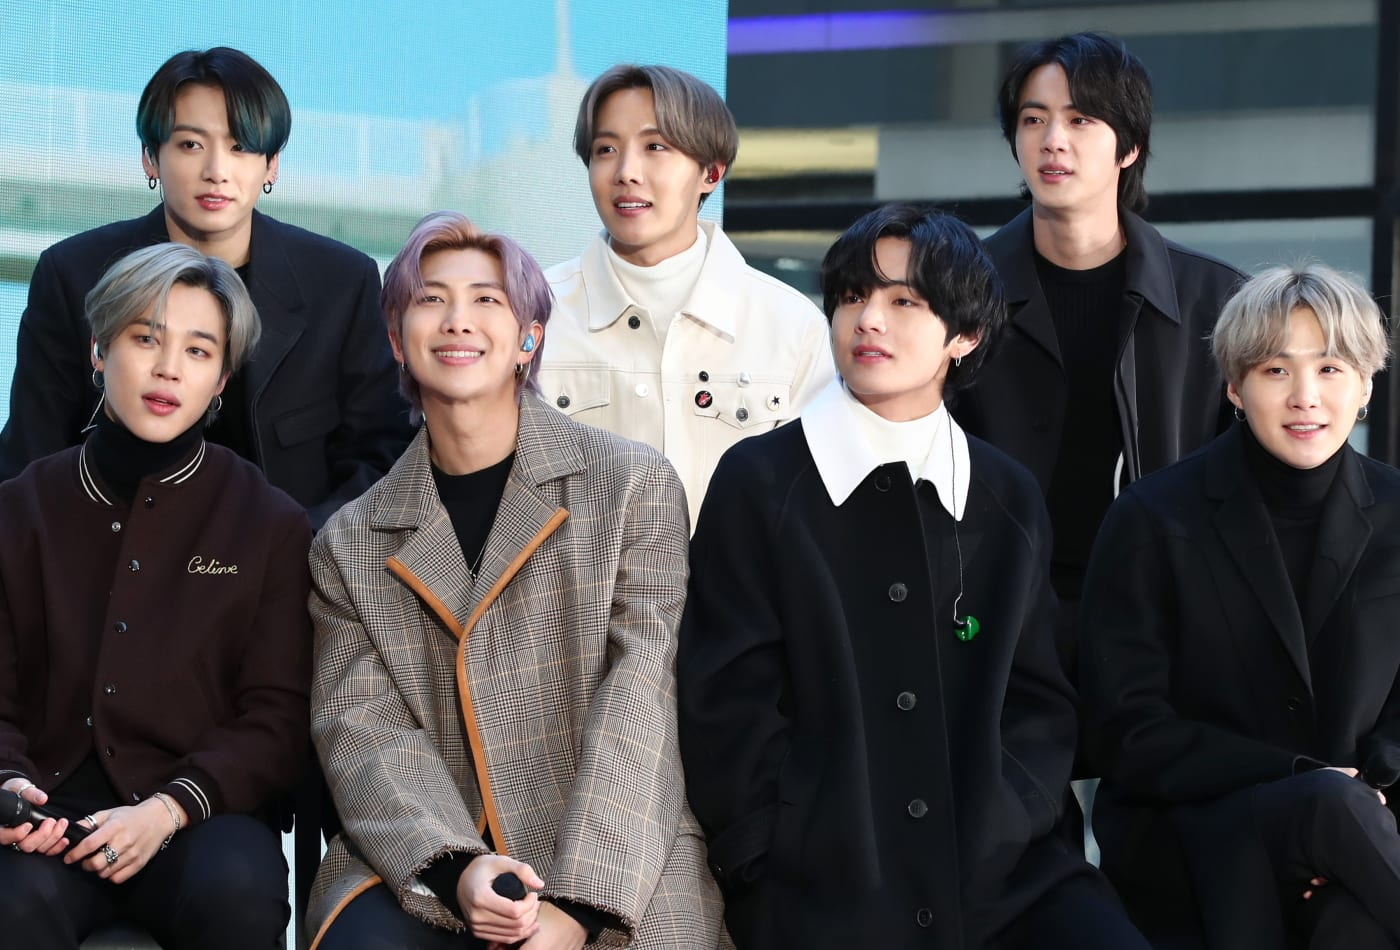 BTS is well known for their variety of talents, but very few realize BTS writes their own songs. Get to know their songwriting process.